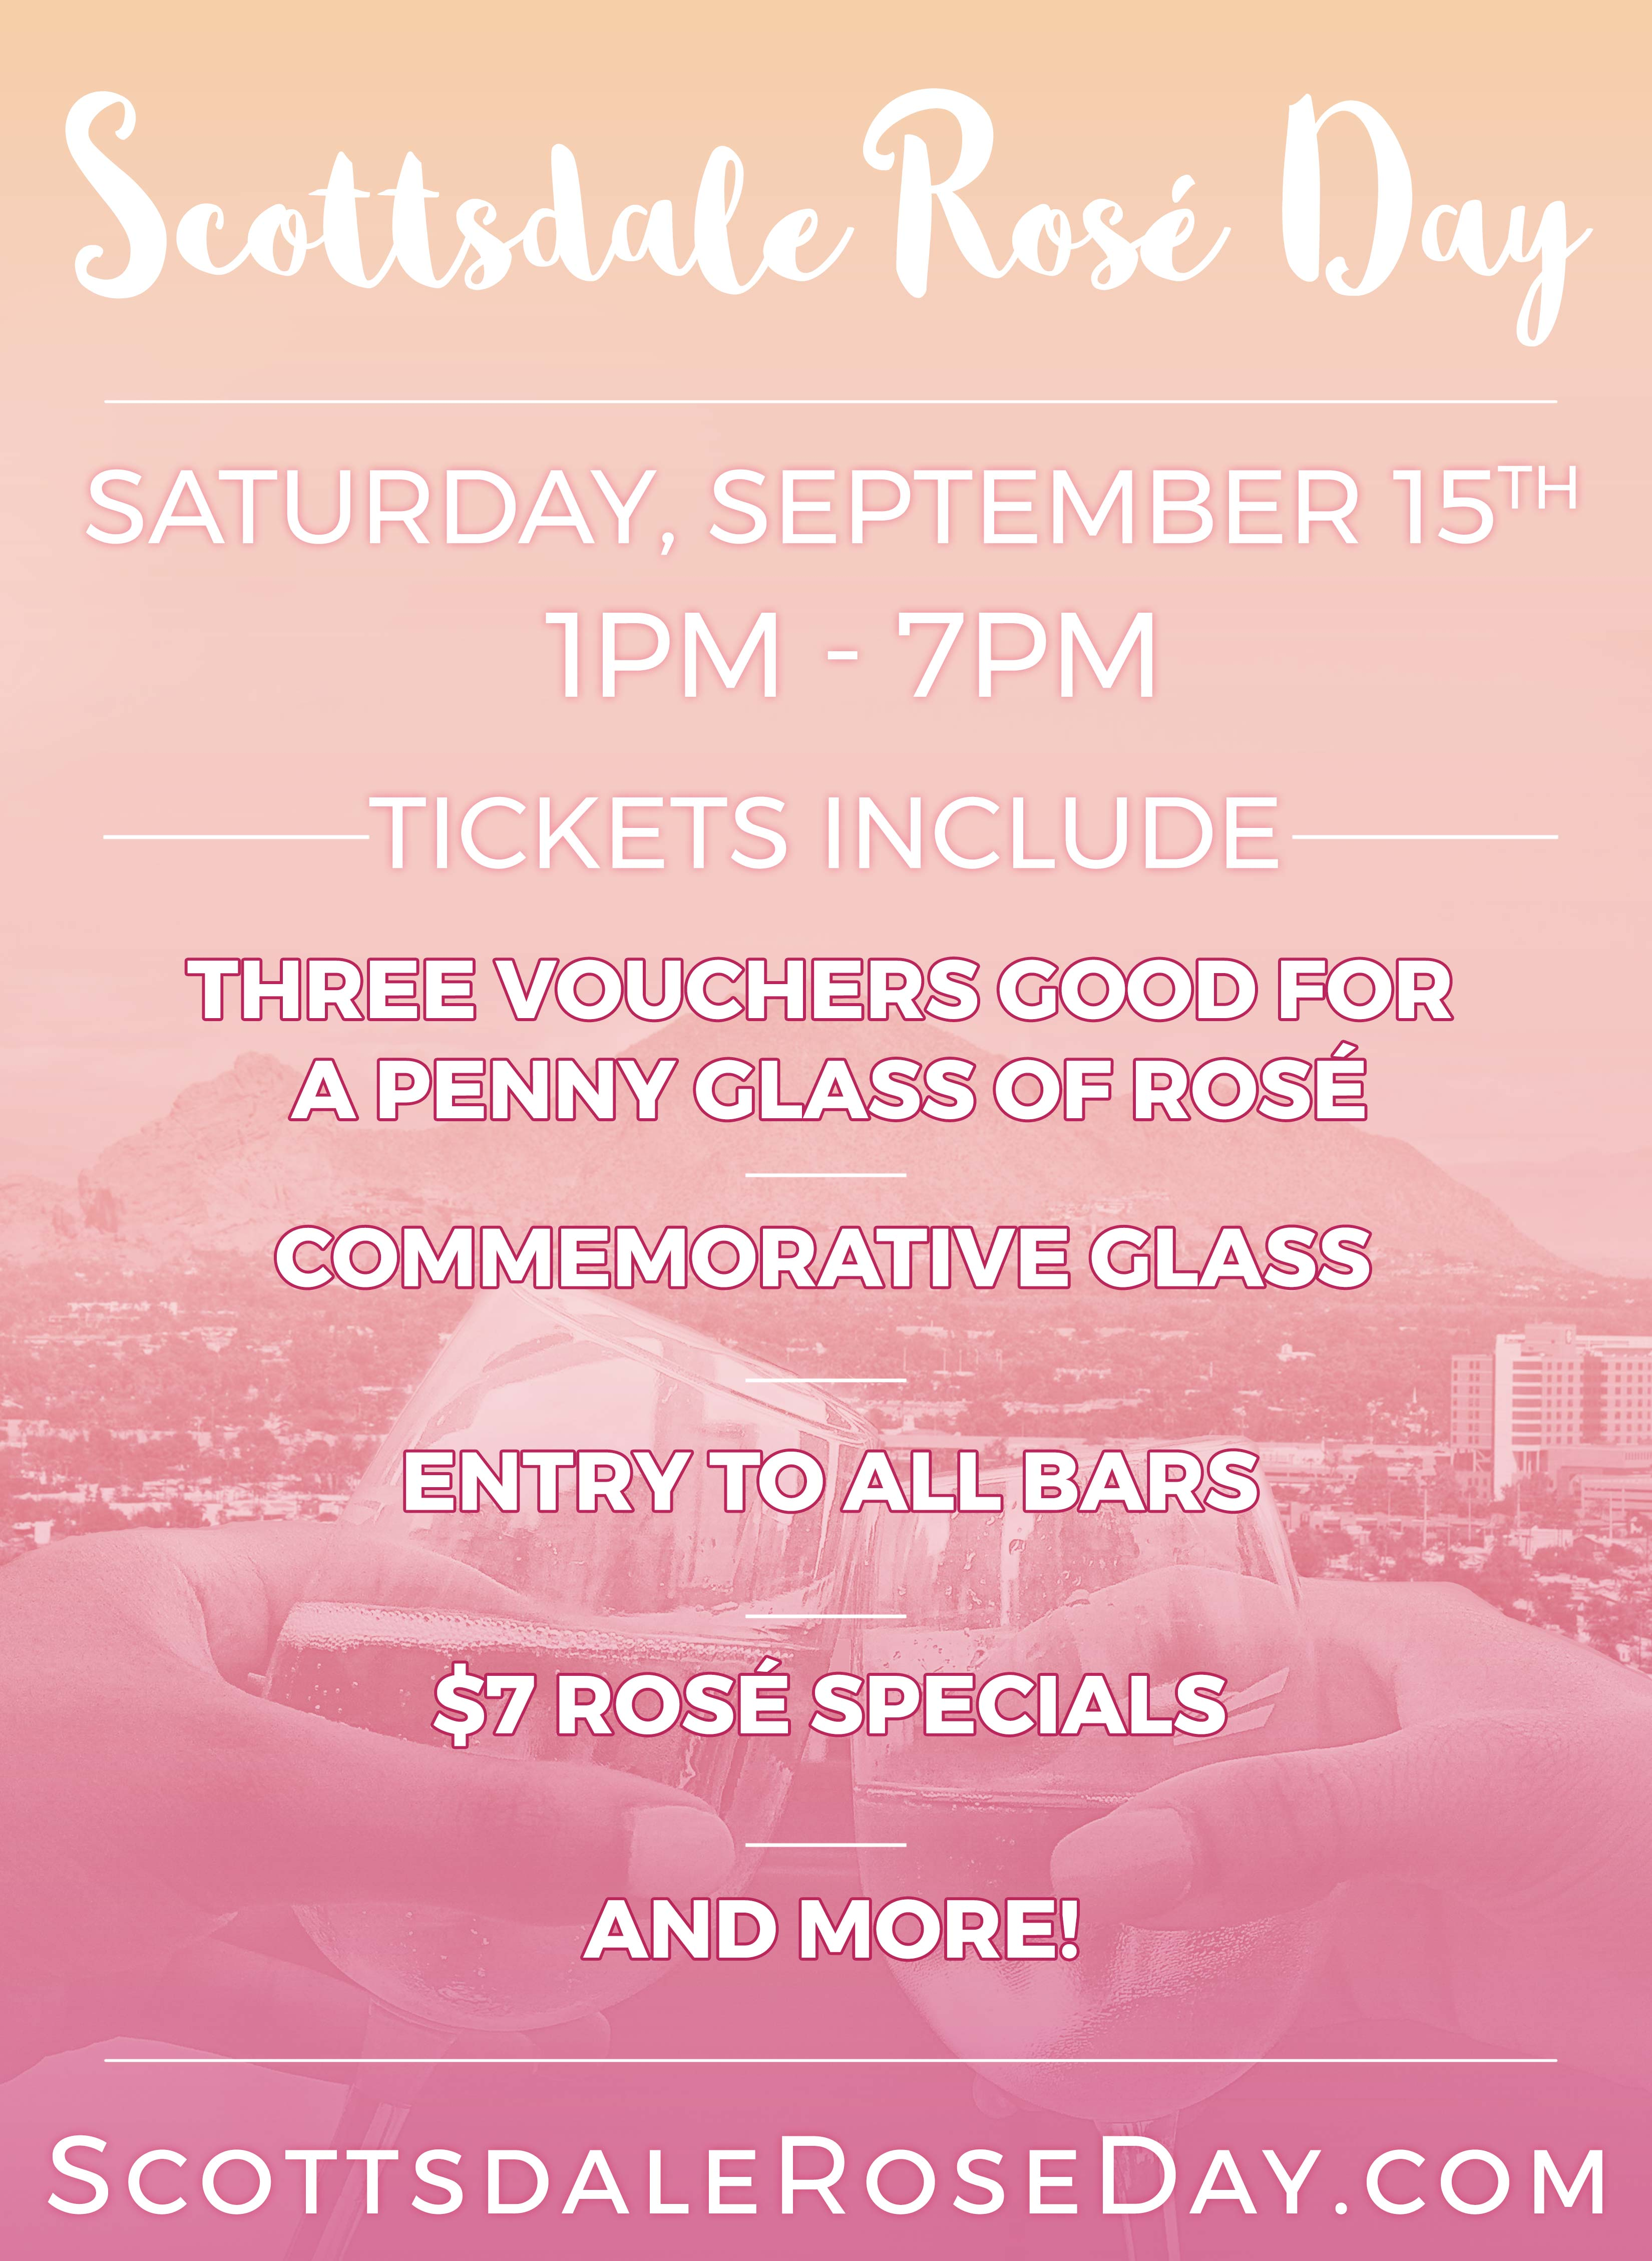 Scottsdale Rosé Day - Tickets include An Official Scottsdale Rosé Day glass, Three 1-penny ($.01) glasses of Rosé (each attendee will receive 3 vouchers, each good for a 1-penny glass of Rosé), Admission to all participating venues, $7 Rosé Specials & More!